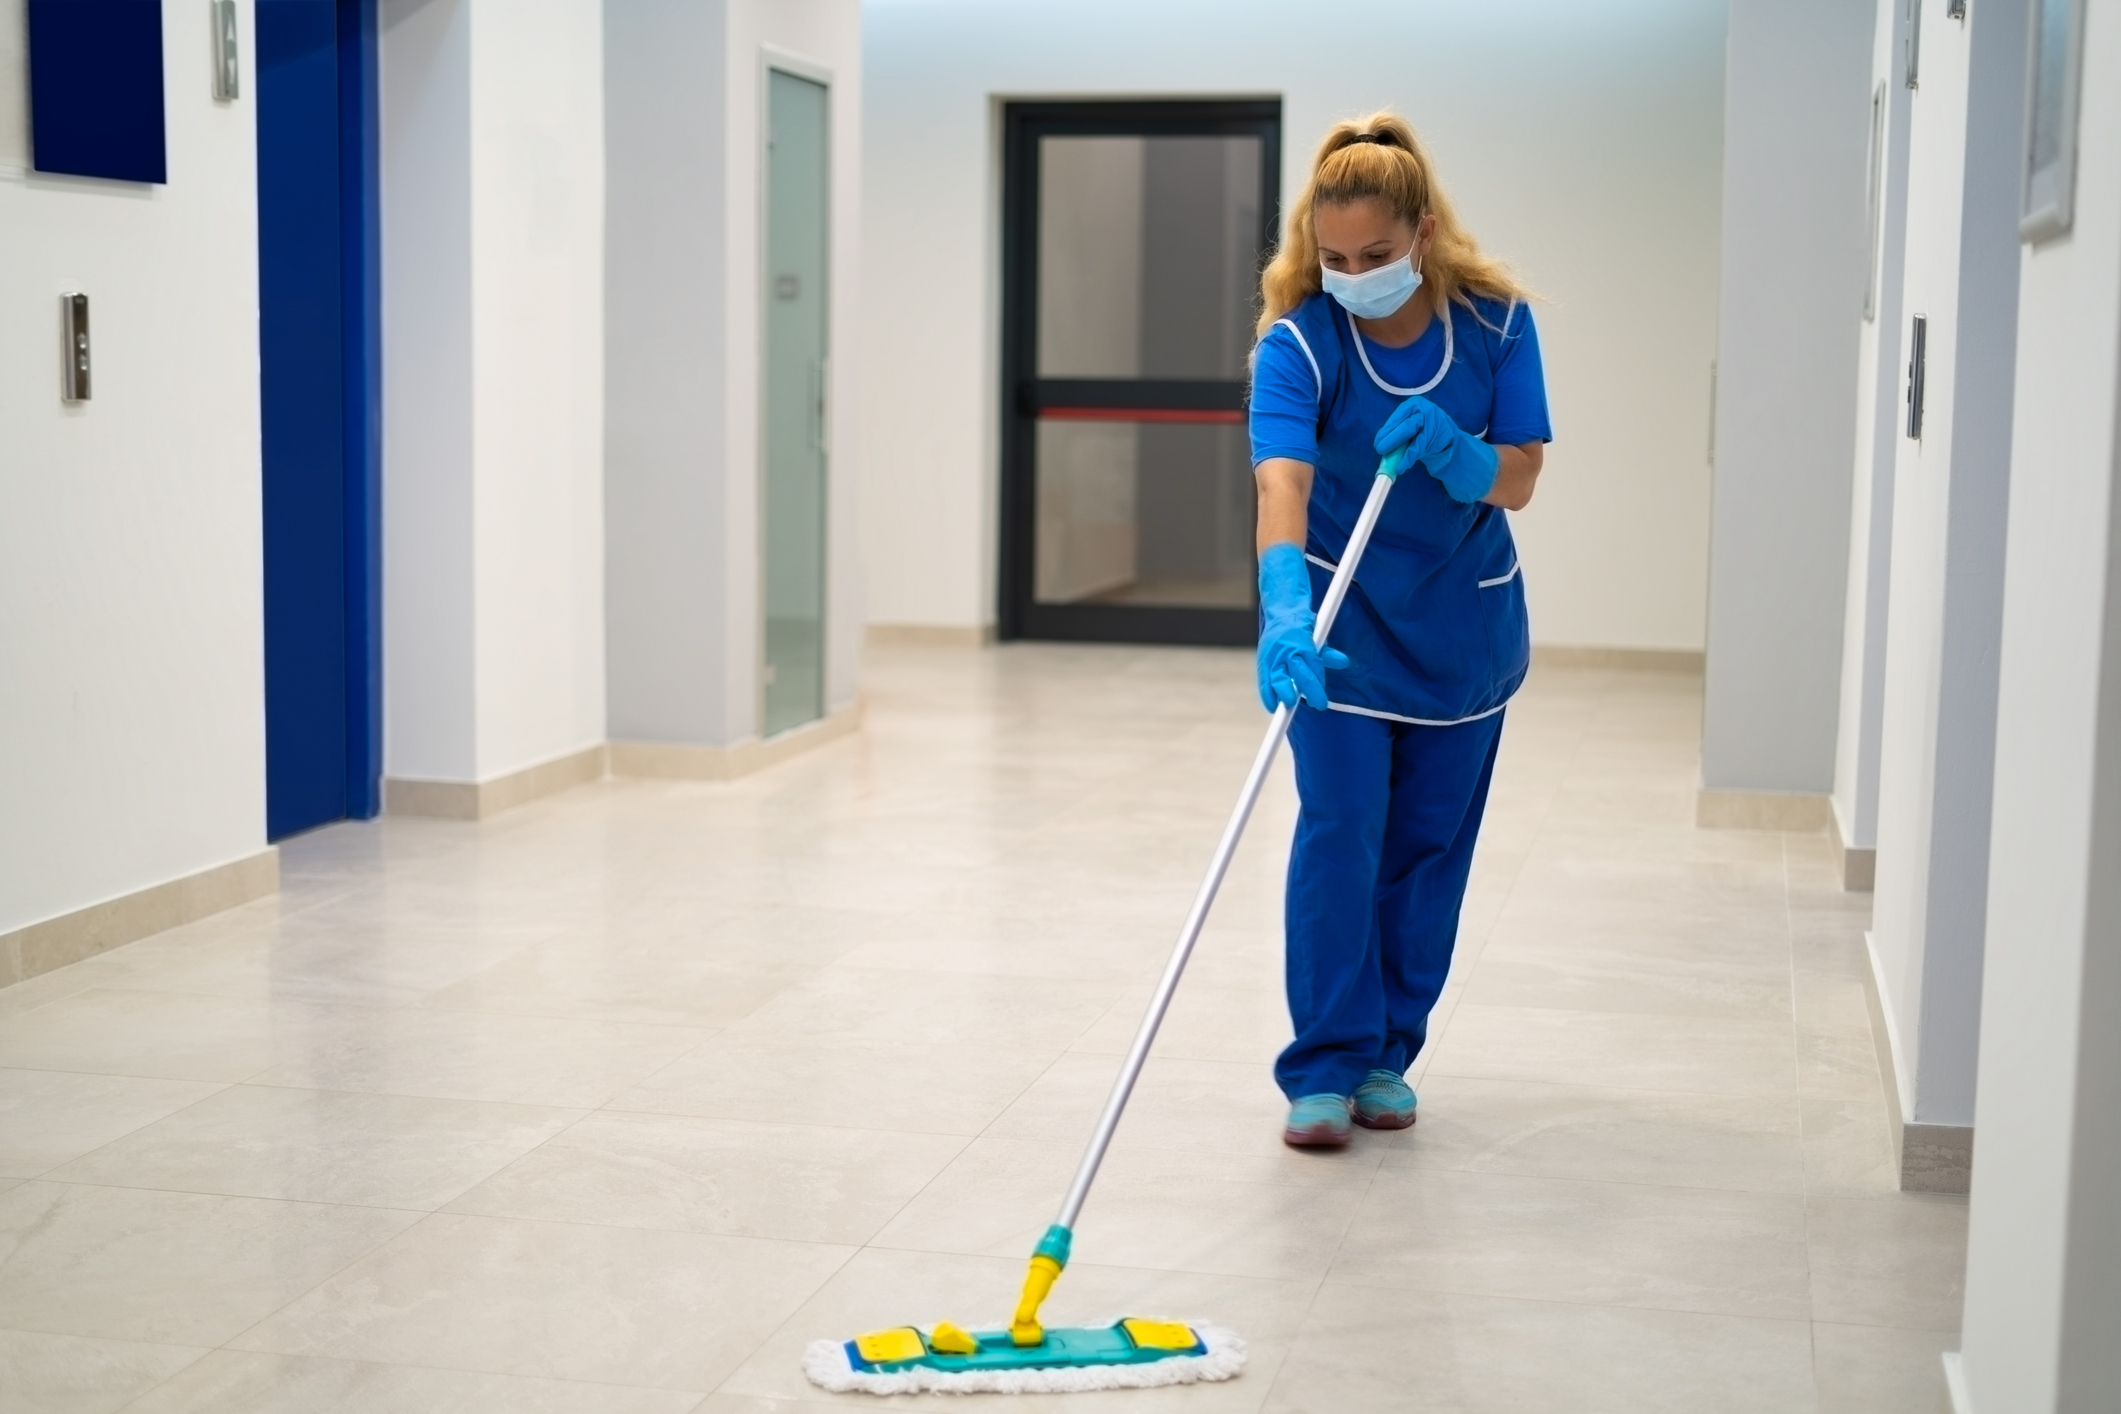 A commercial cleaner form Croft Environmental cleaning floor tiles in a commercial building